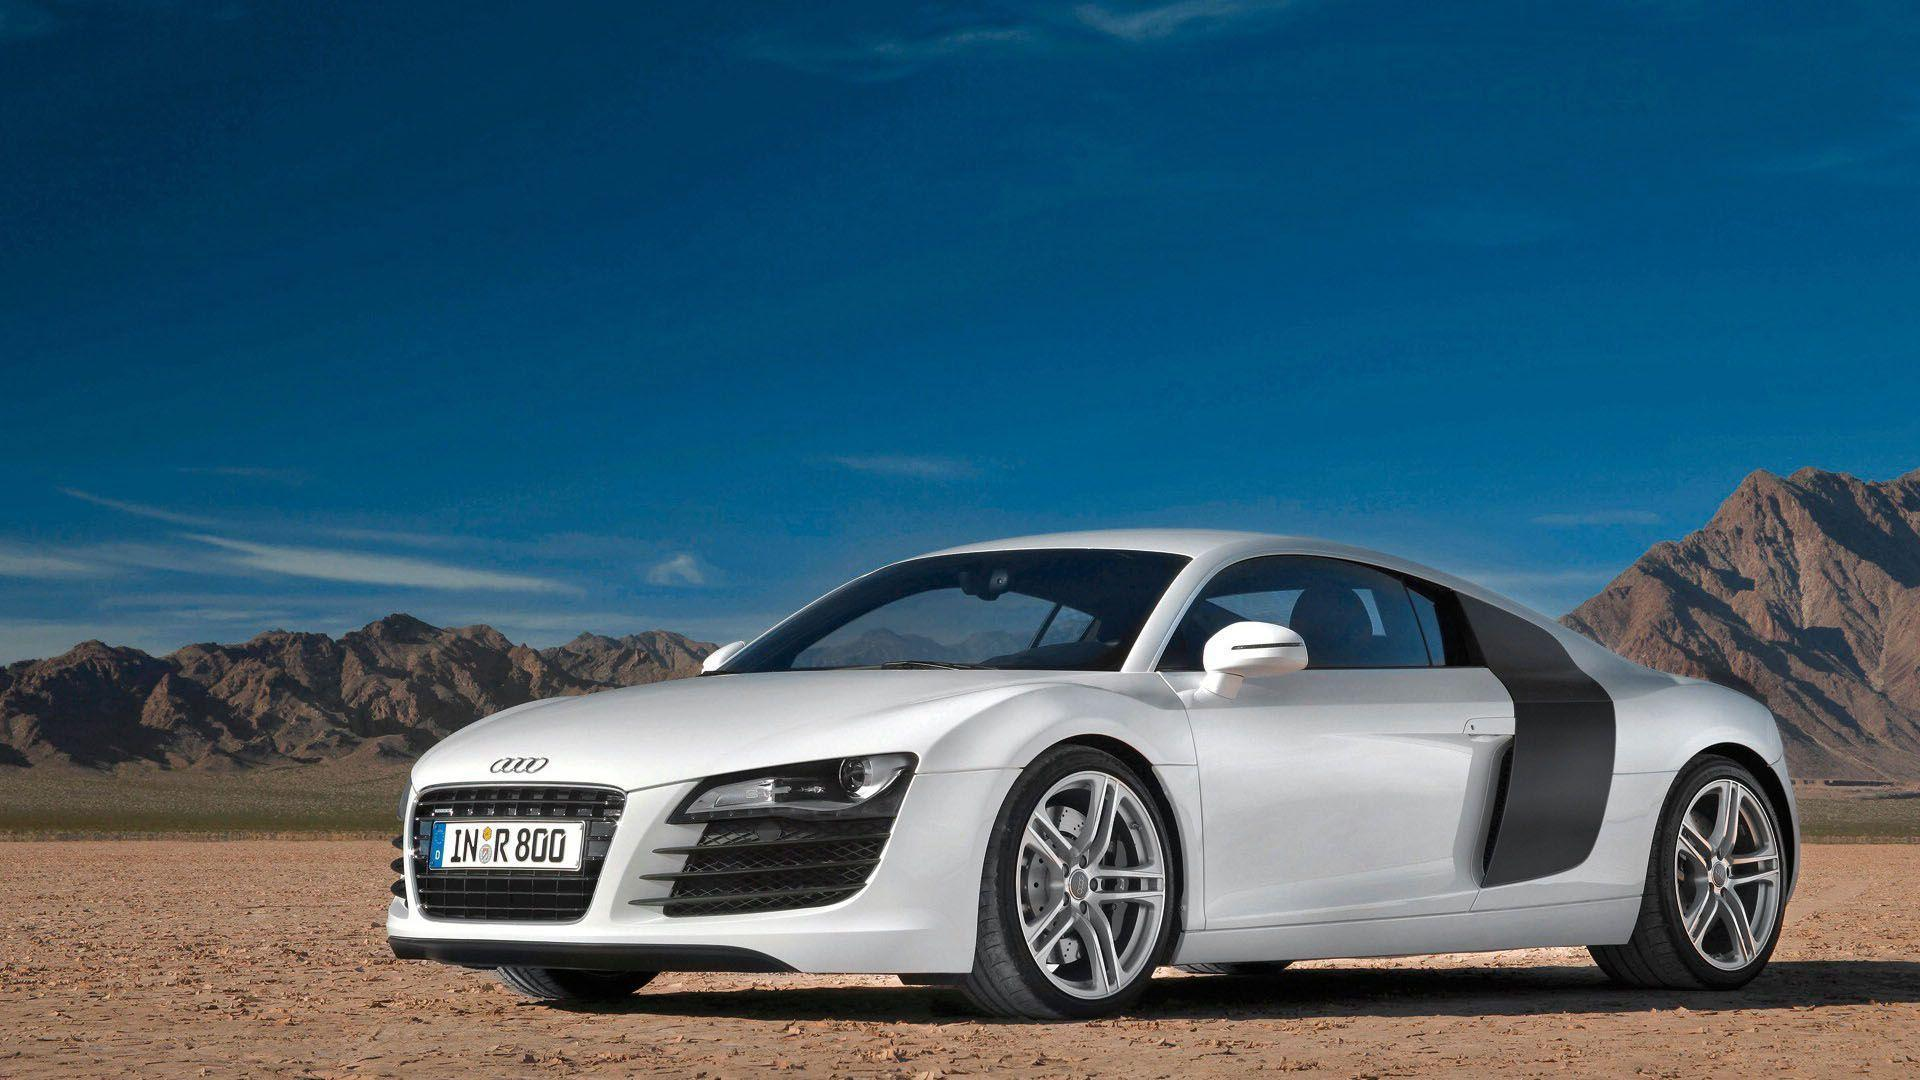 Nothing Found For Audi R8 Wallpaper Car Desktop 1920 1080 Hd